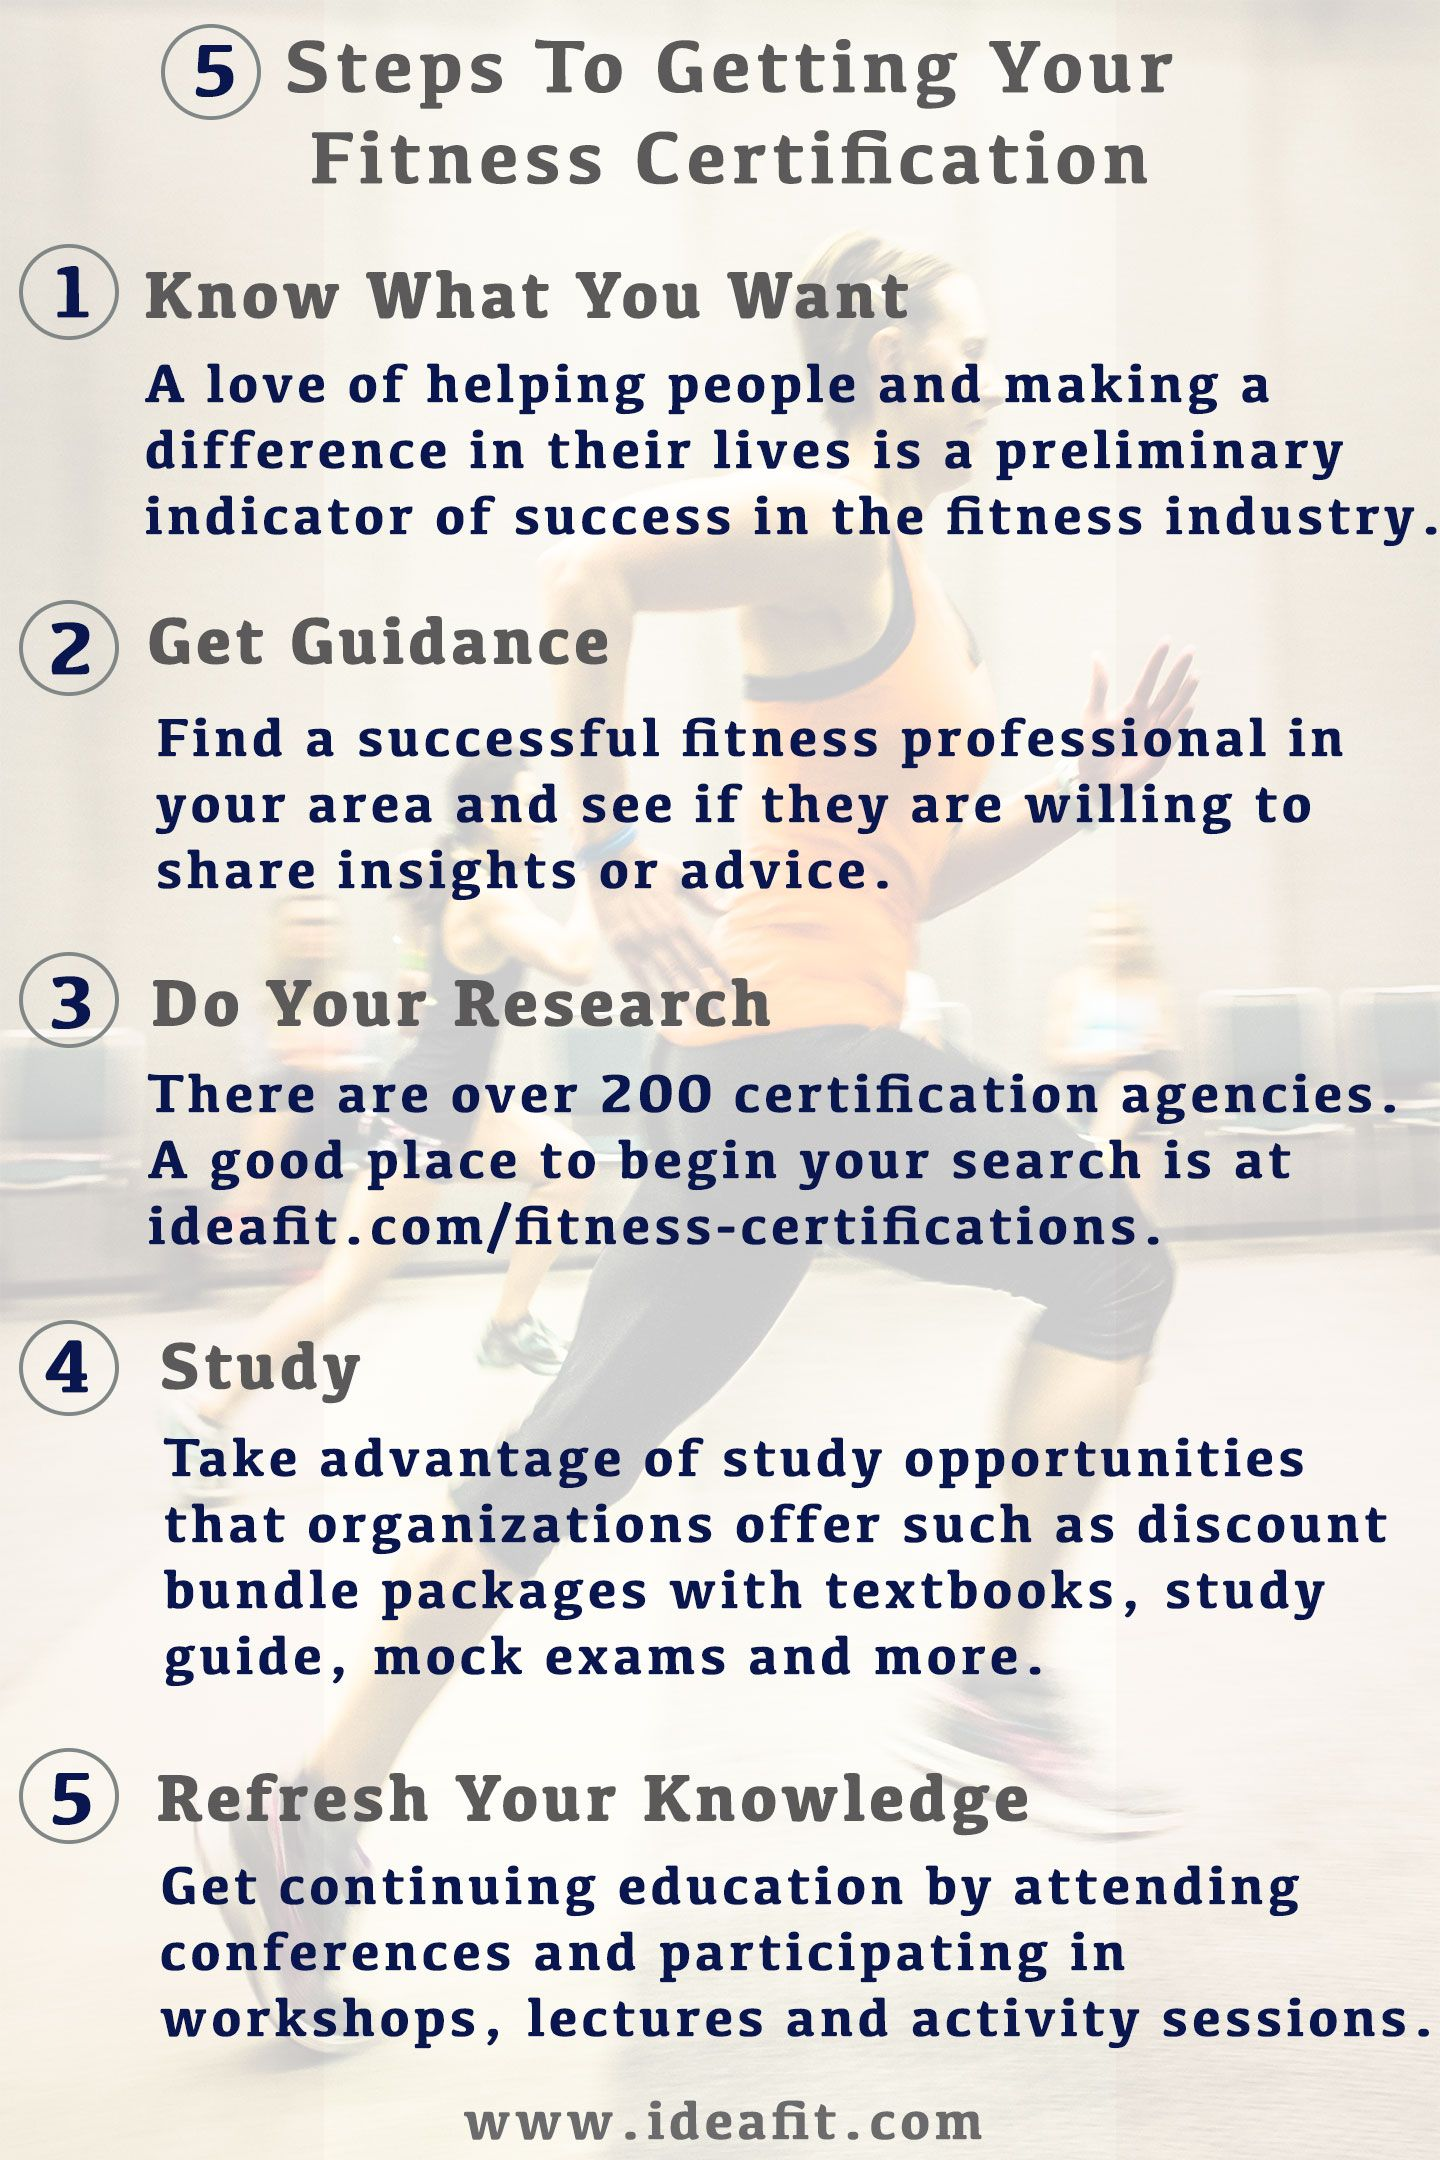 5 Steps To Getting Your Fitness Certification Health And Fitness